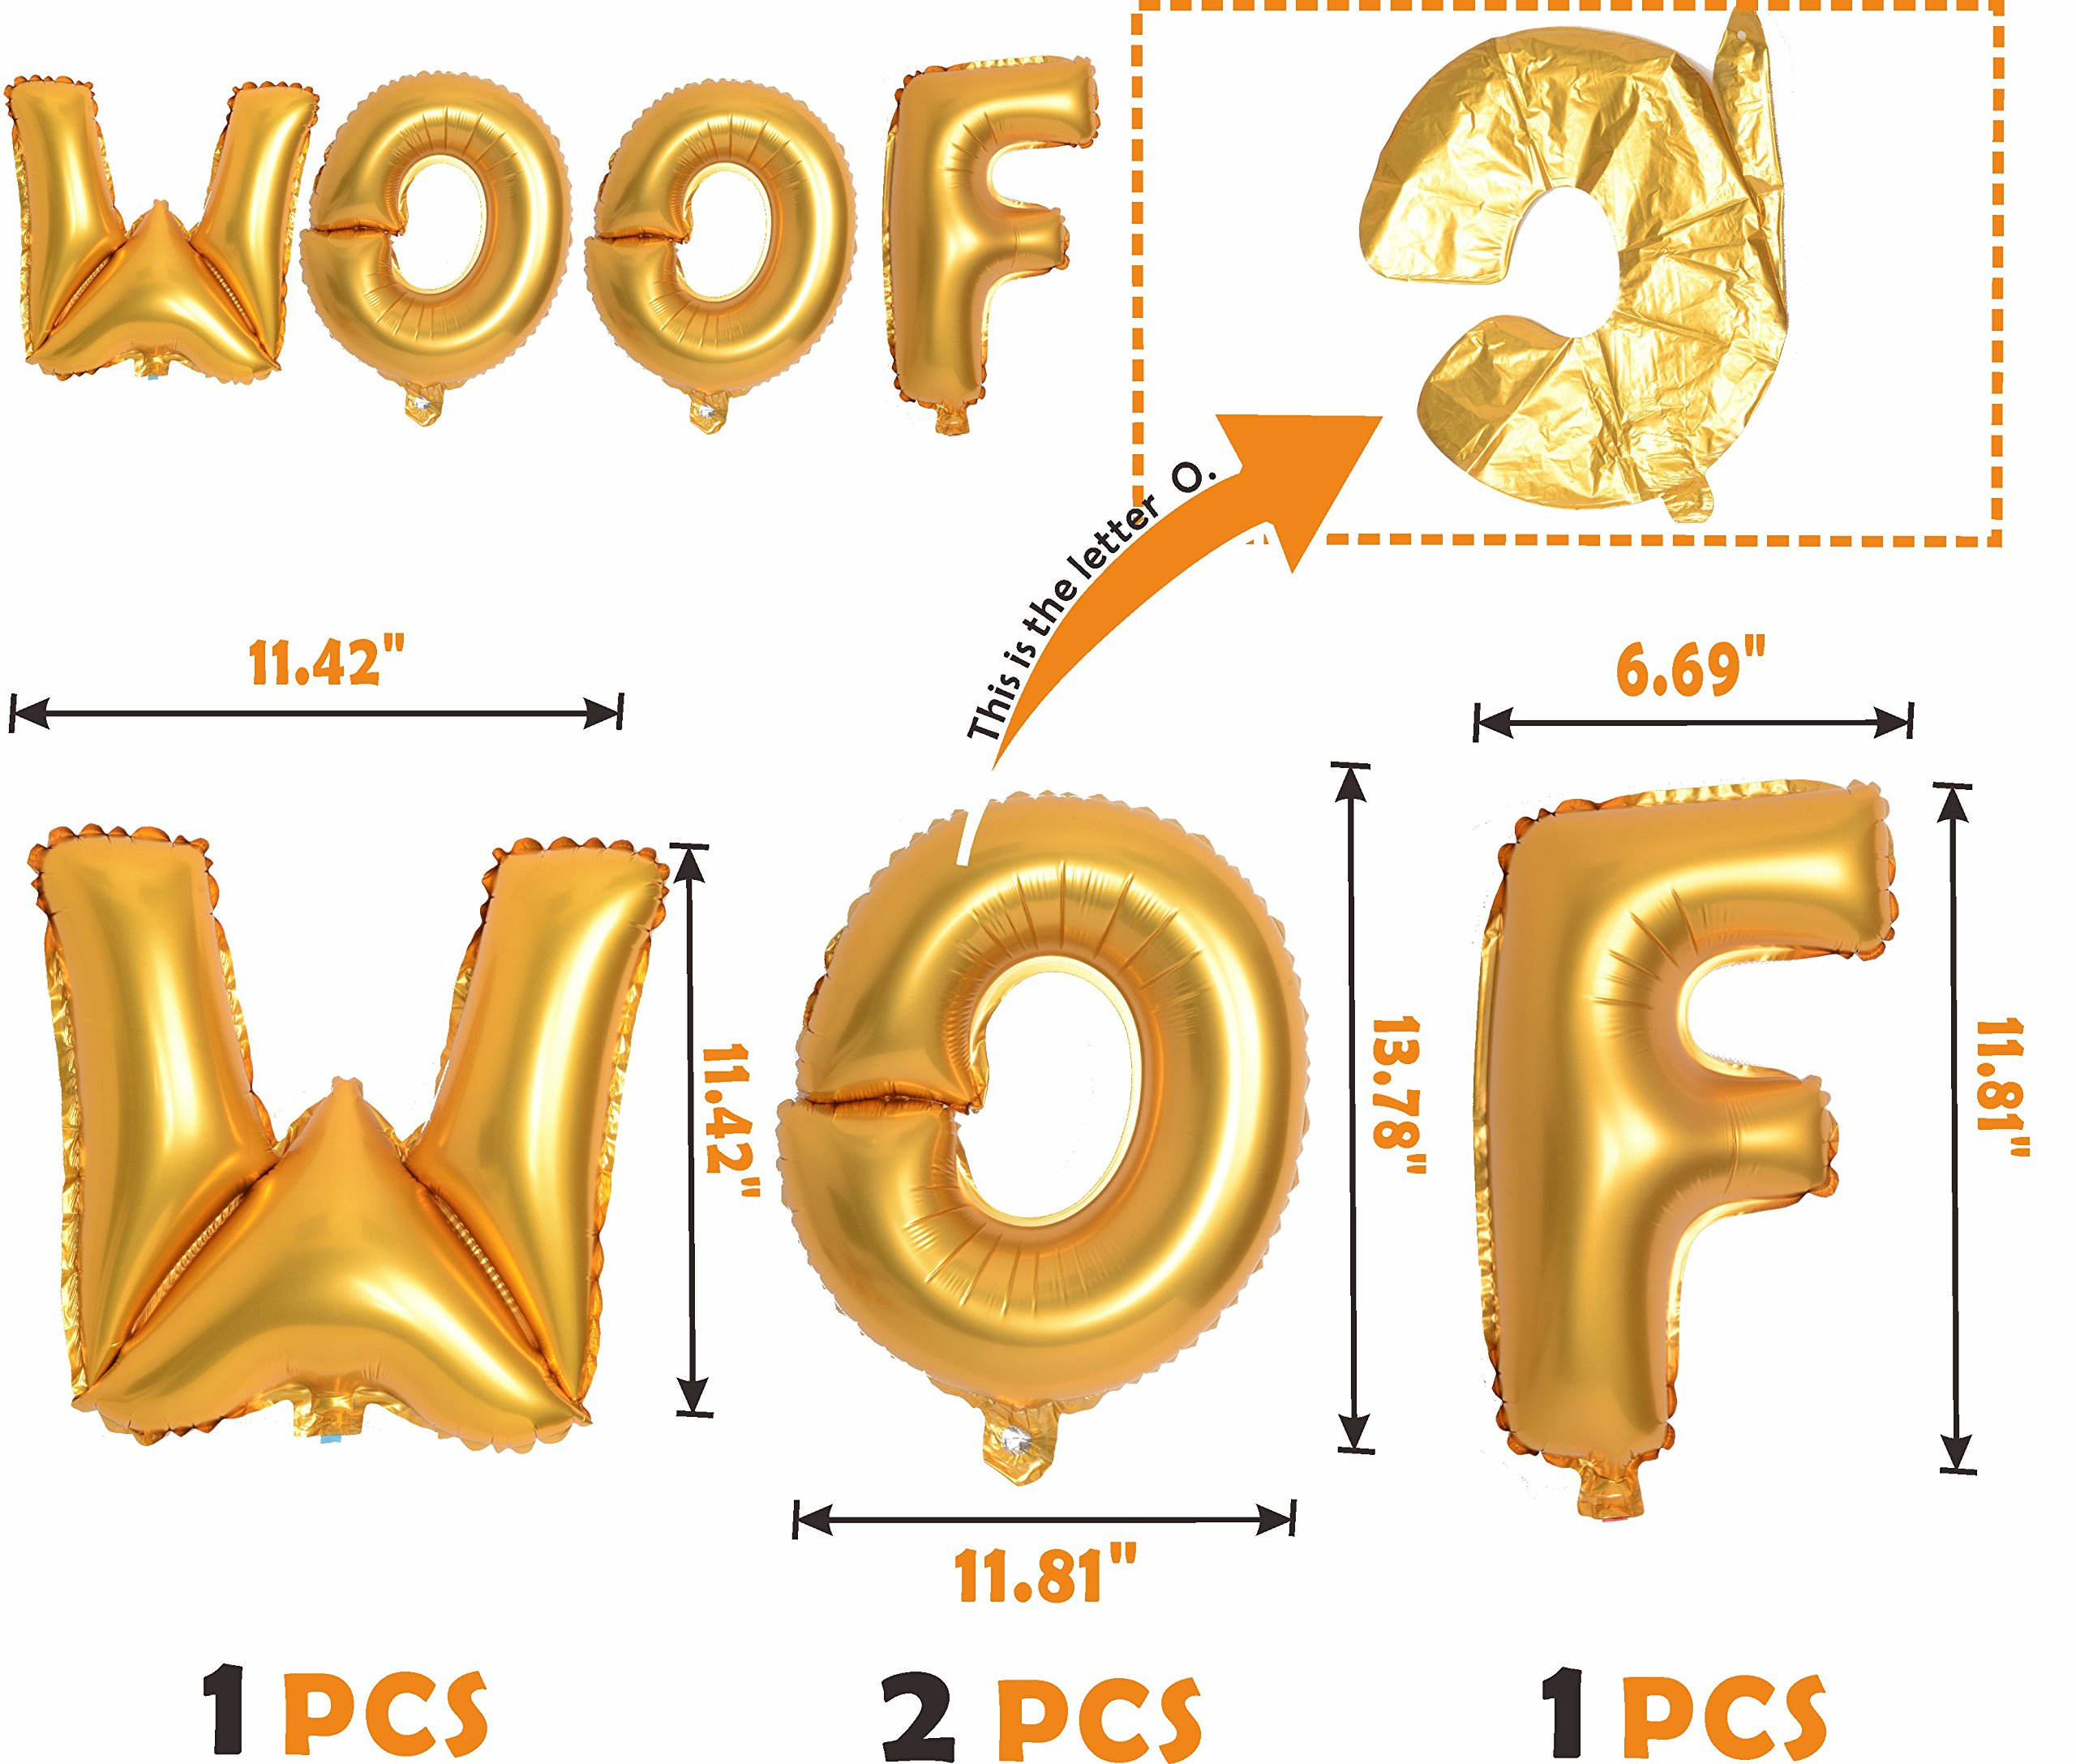 Meant2ToBe Dog Birthday Decorations Kit, 12 Inch WOOF Letter Ballons - 6Pc Walking Animal Pet Dog balloons - Paw Prints Round Biodegradable Latex Balloons - Blue Dog Birthday Hat by Meant2ToBe (Image #2)